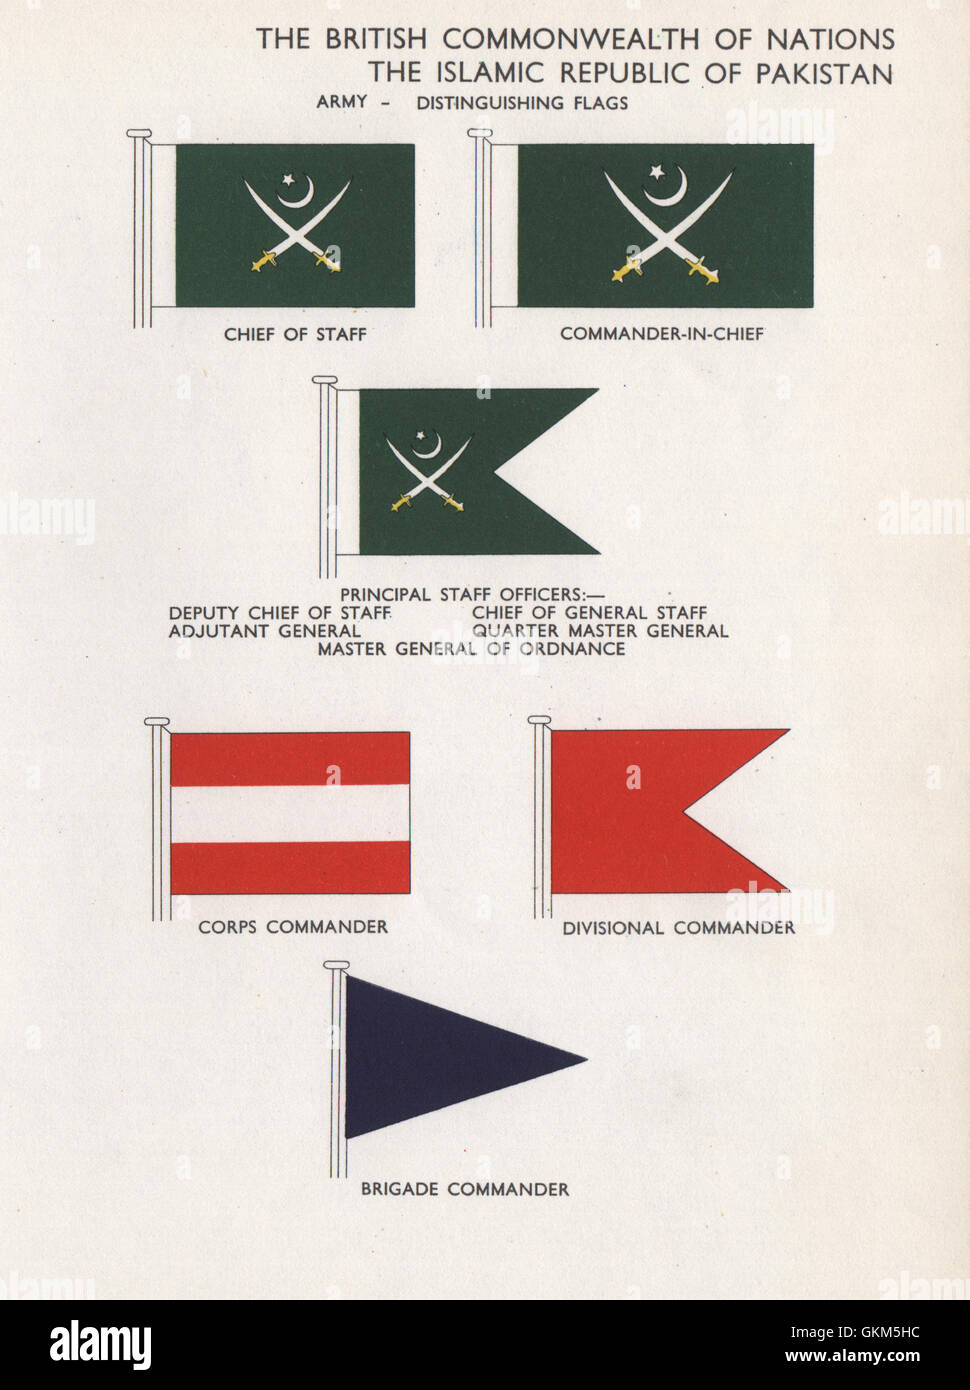 PAKISTAN ARMY FLAGS. Chief of Staff. C-in-C. Commander, vintage print 1958 - Stock Image